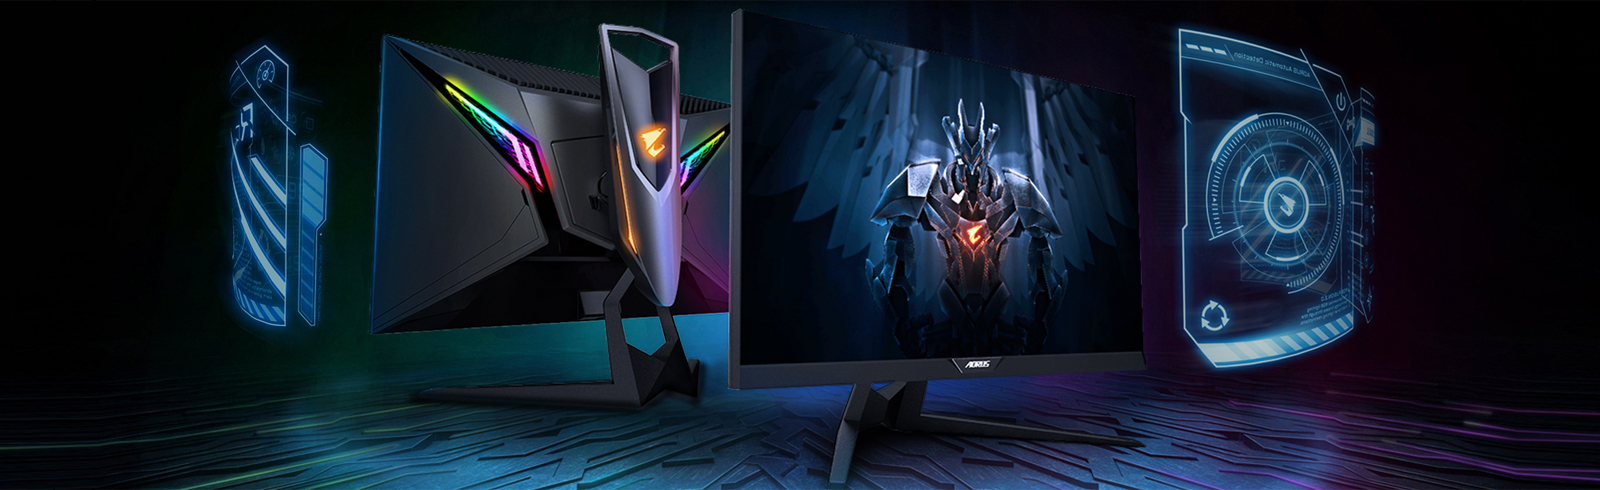 The first tactical gaming monitor is here - enter the AORUS AD27QD by Gigabyte